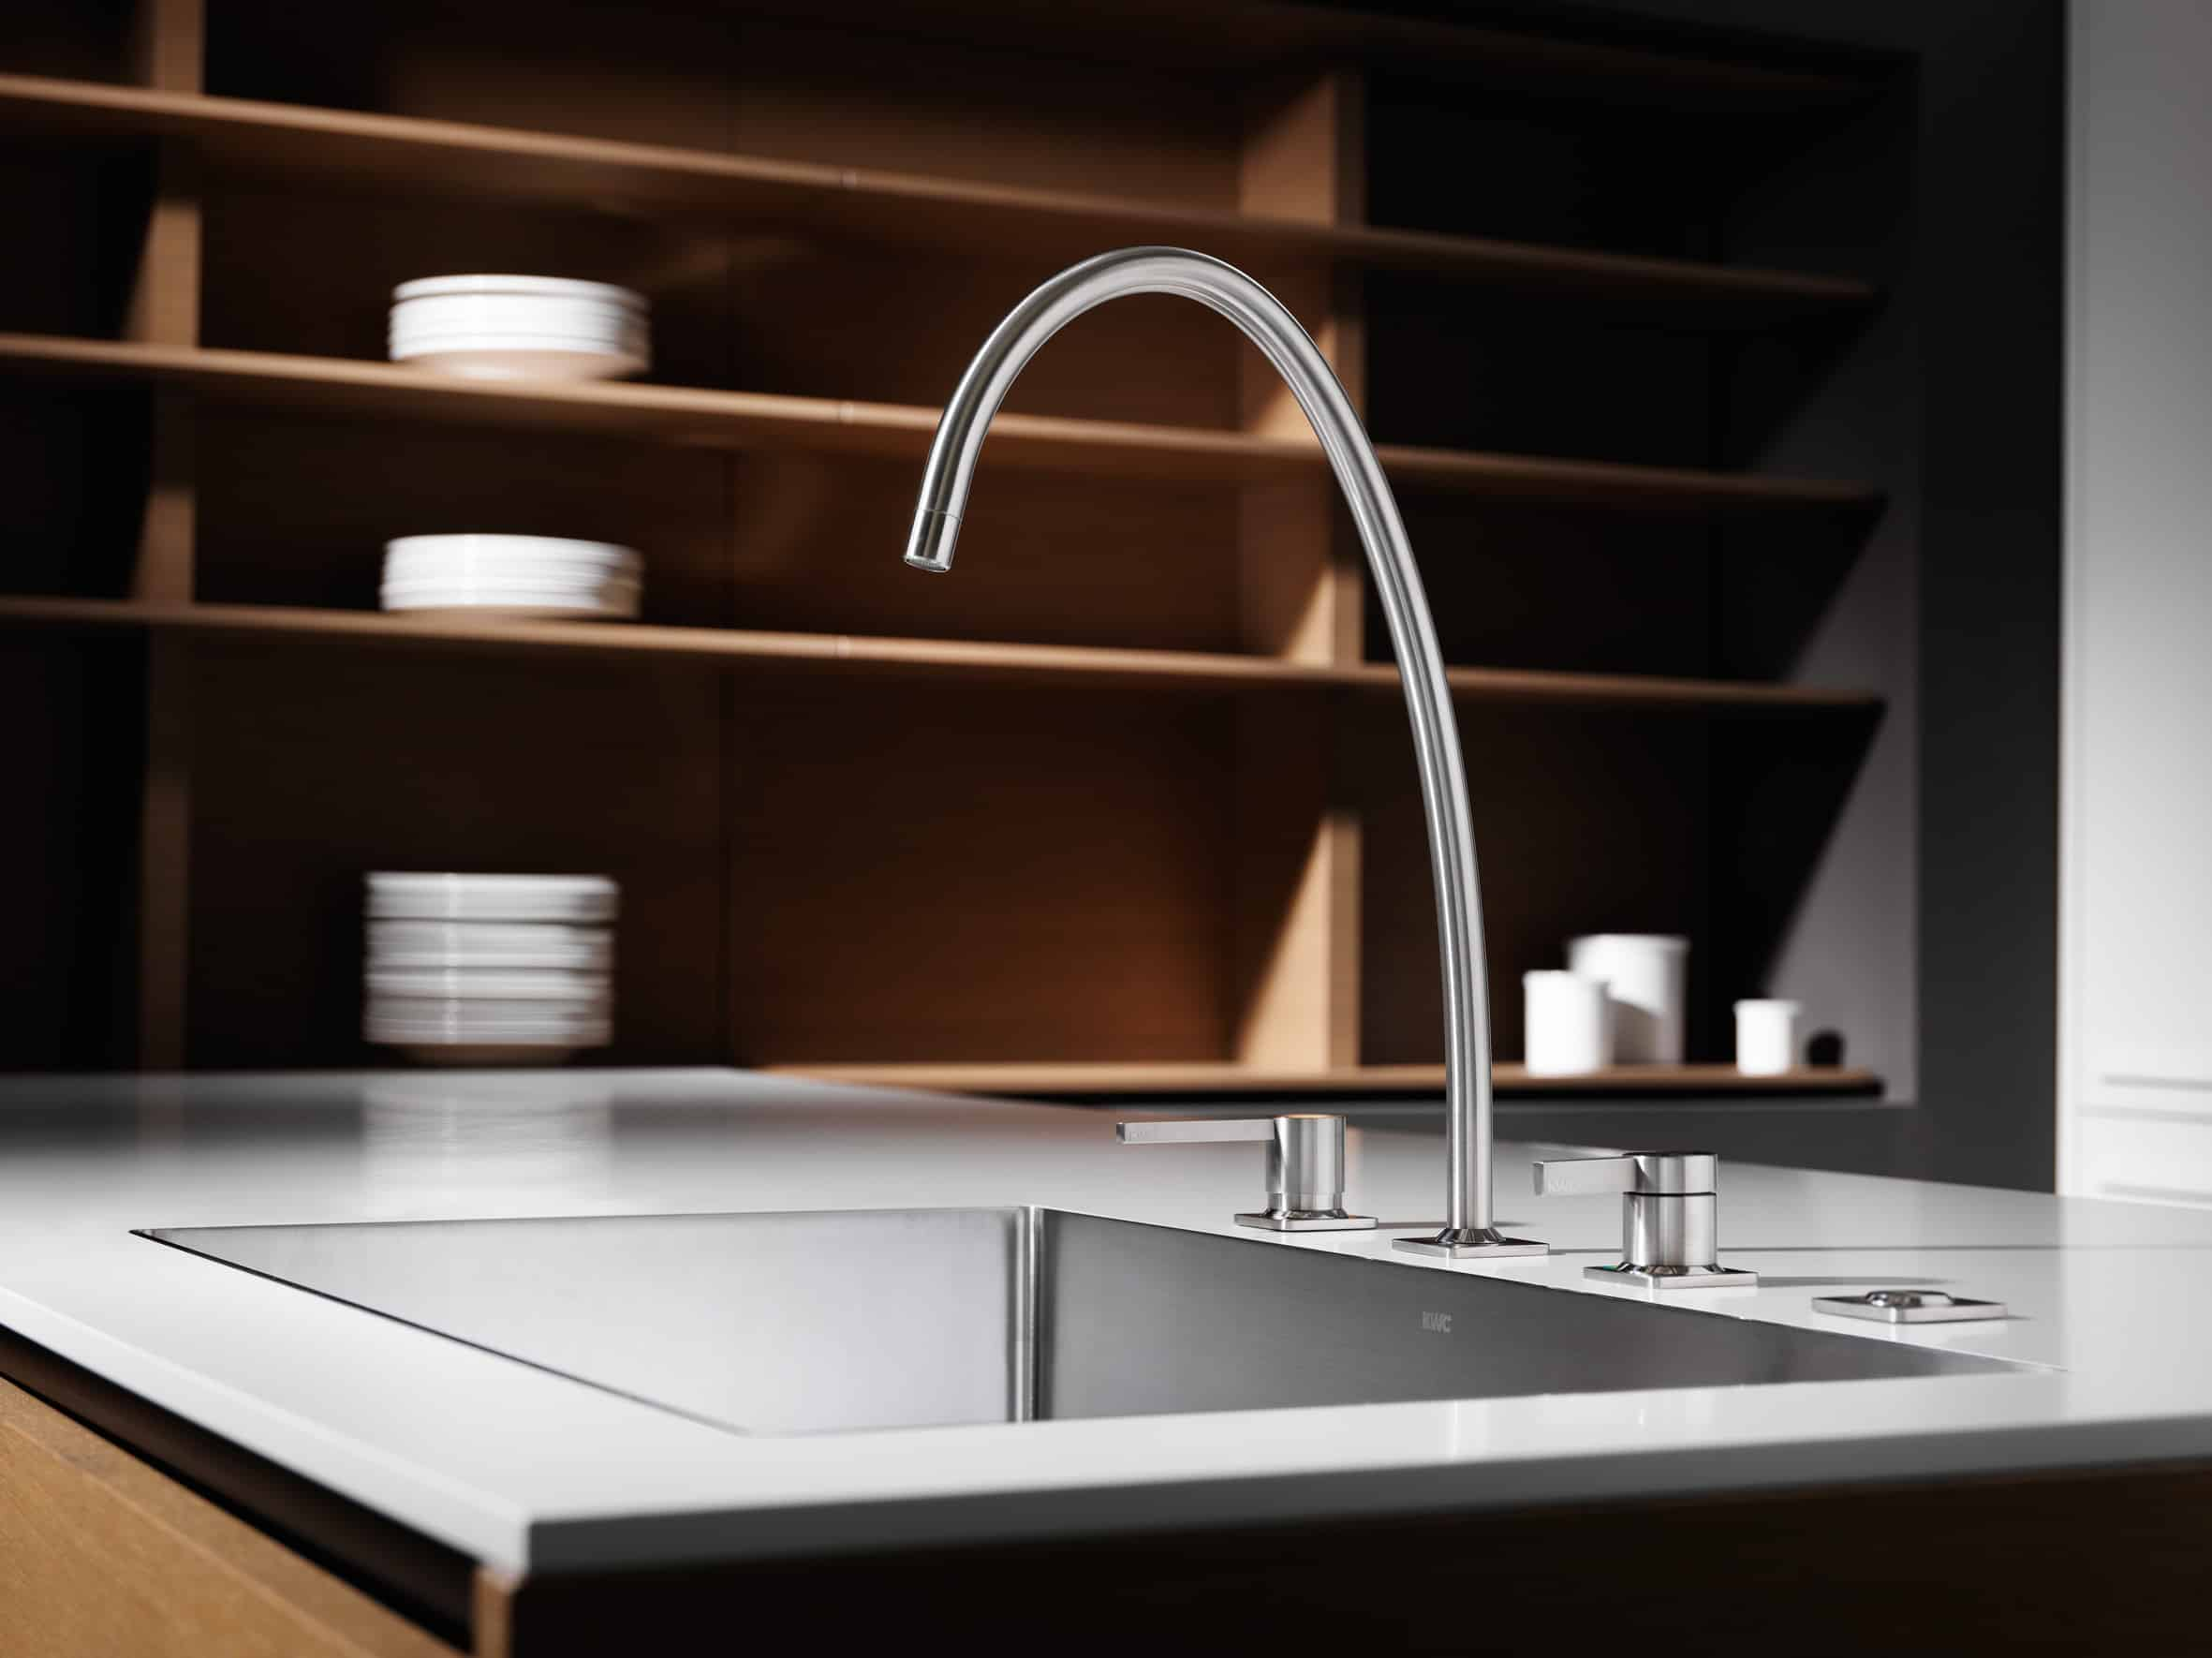 sophisticated style cliff meets meet projects frankfurt faucets ish hansa the home in elegant for us at faucet hansacliff classic